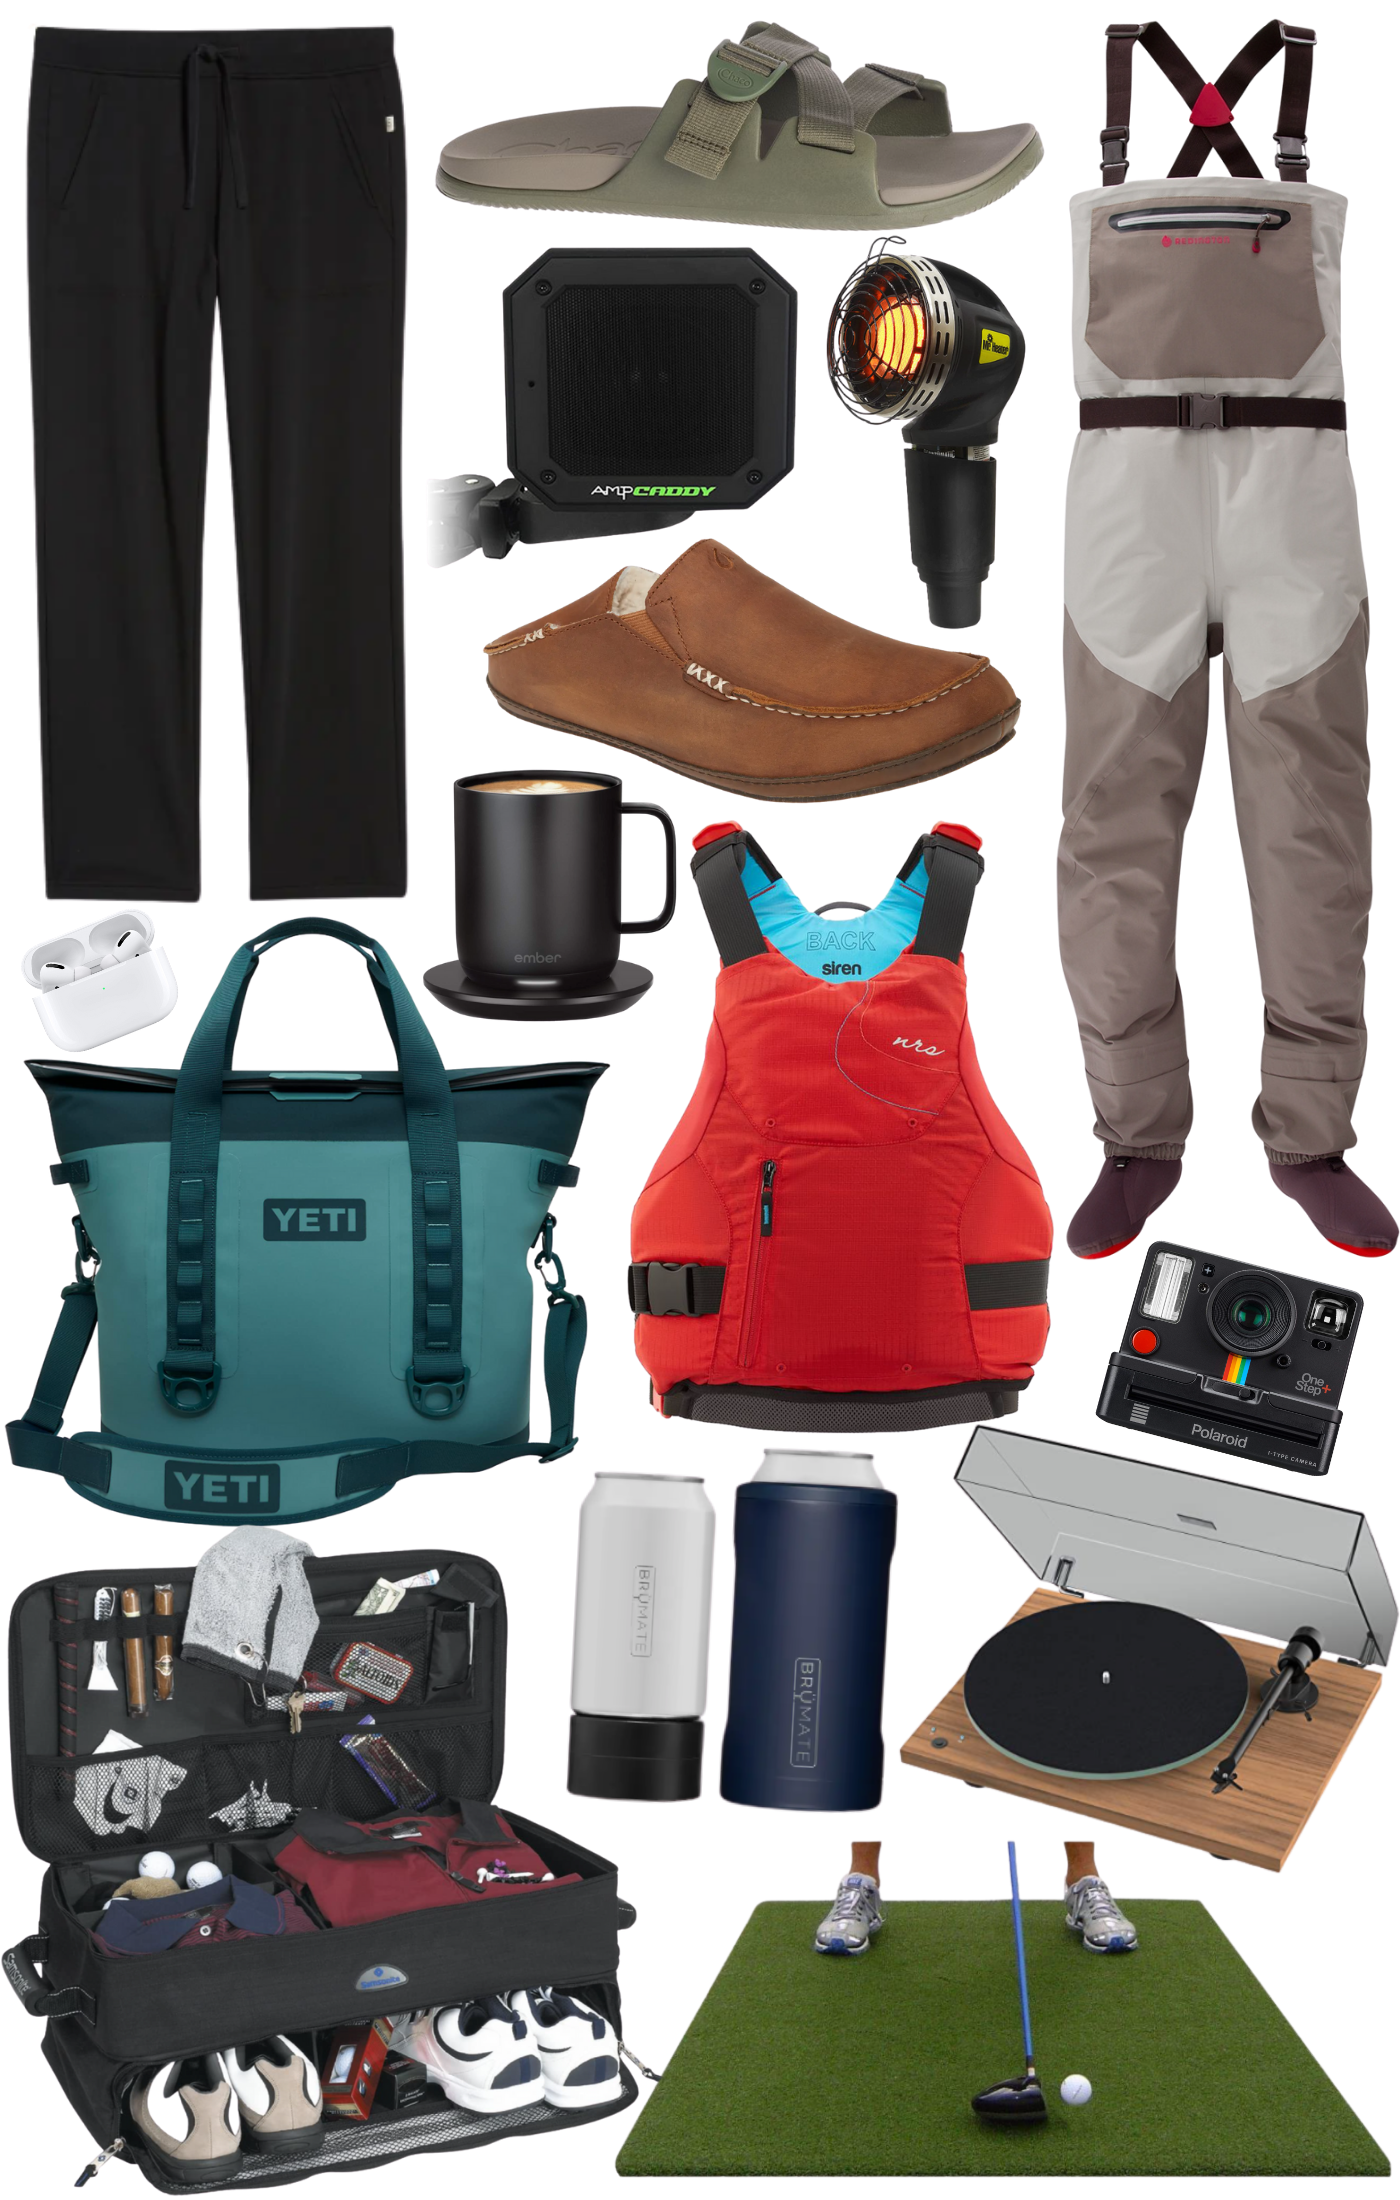 Collage of gift ideas for him